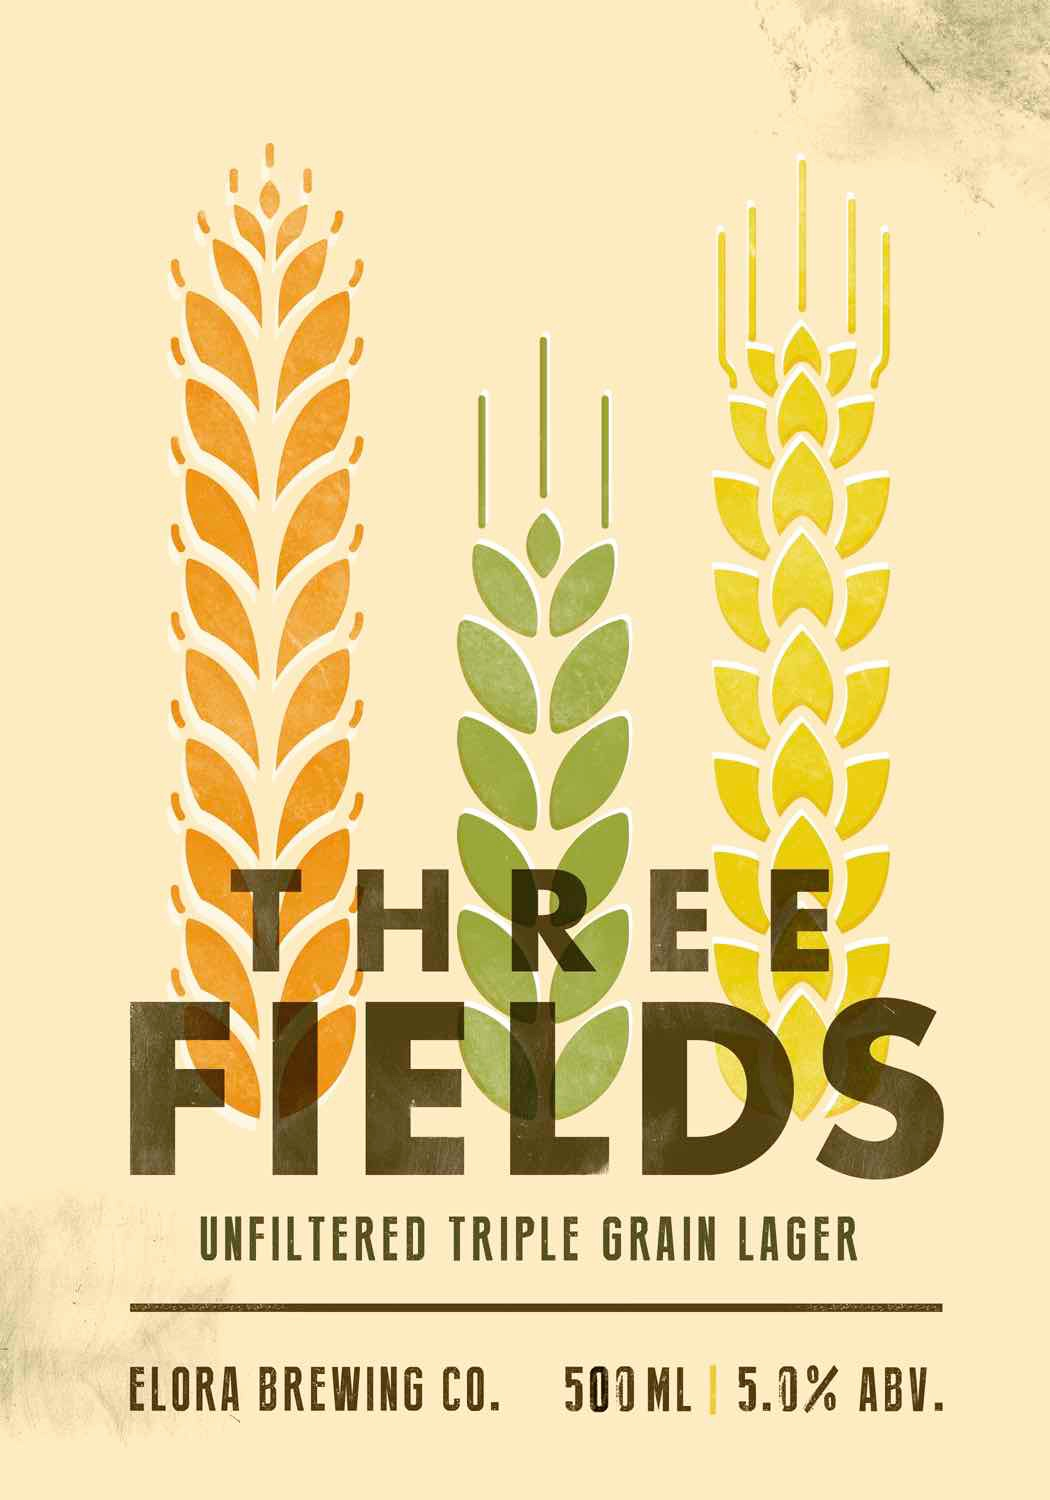 ON TAP: YES  IN THE FRIDGE: NO  A unique blend of barley, rye, and wheat, Three Fields is a distinct lager that captures the rich agricultural heritage of Elora. Experience a smooth and balanced mouth feel that finishes light, crisp, and refreshing.  4.5% ABV